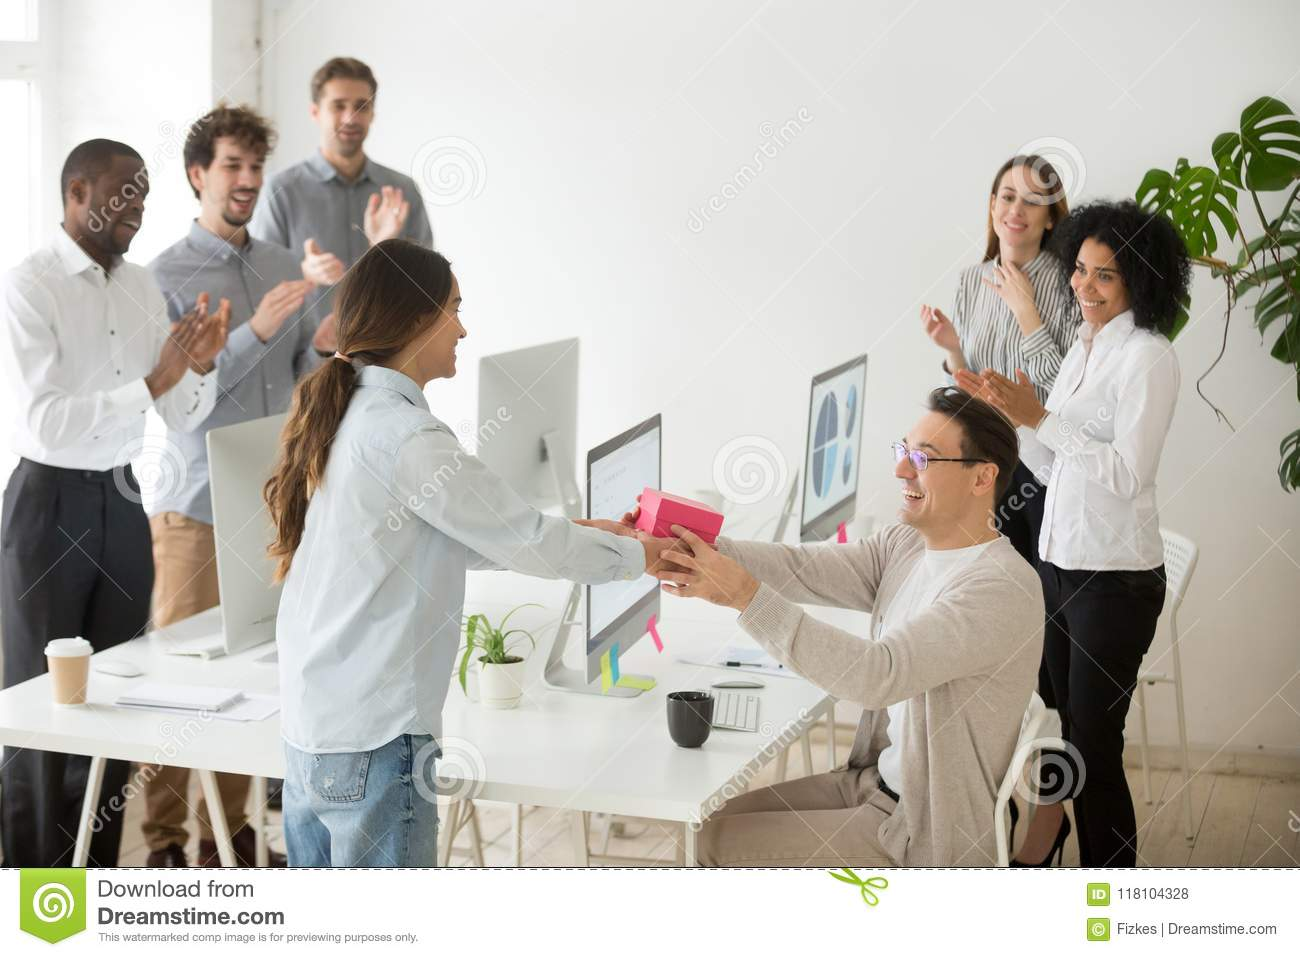 Smiling Female Employee Congratulating Colleague With Birthday Presenting Gift Box Diverse Coworkers Greeting Happy Male Manager Applauding And Making